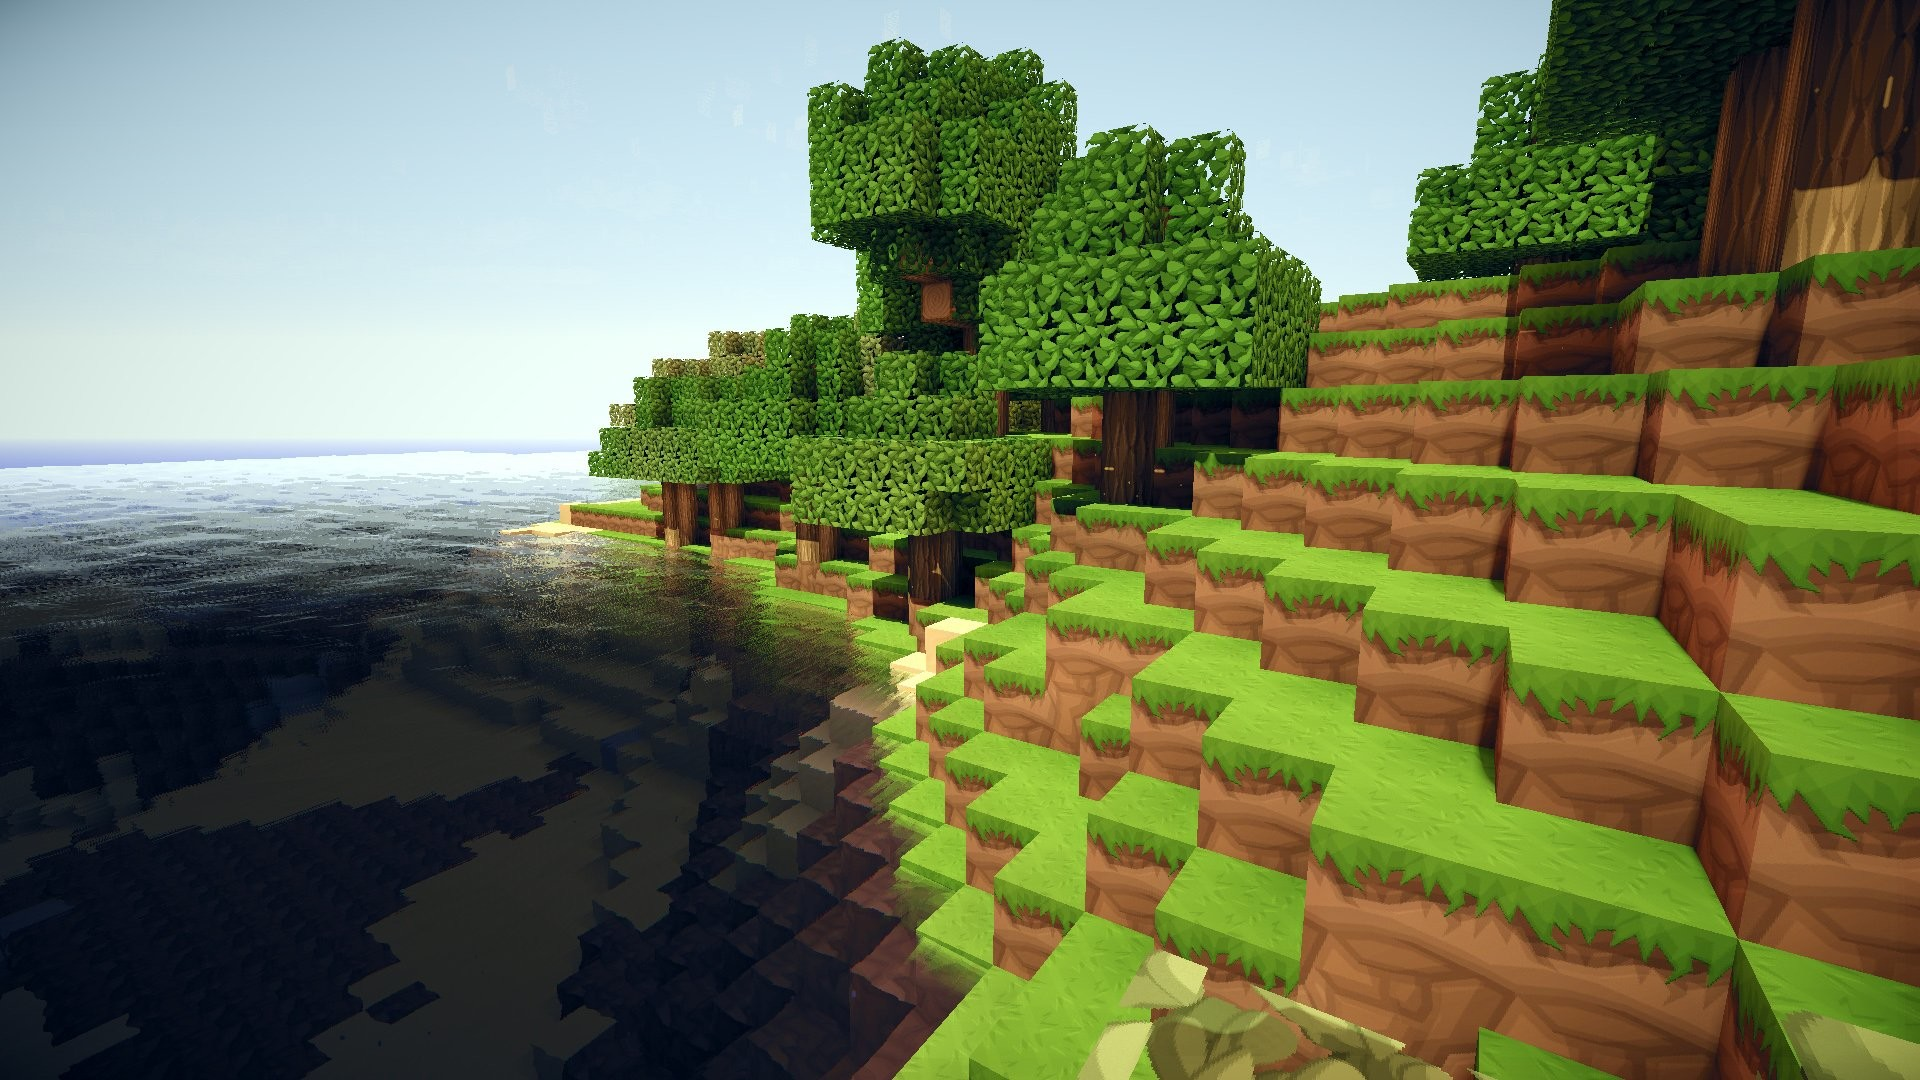 Res: 1920x1080, Video Game - Minecraft Wallpaper